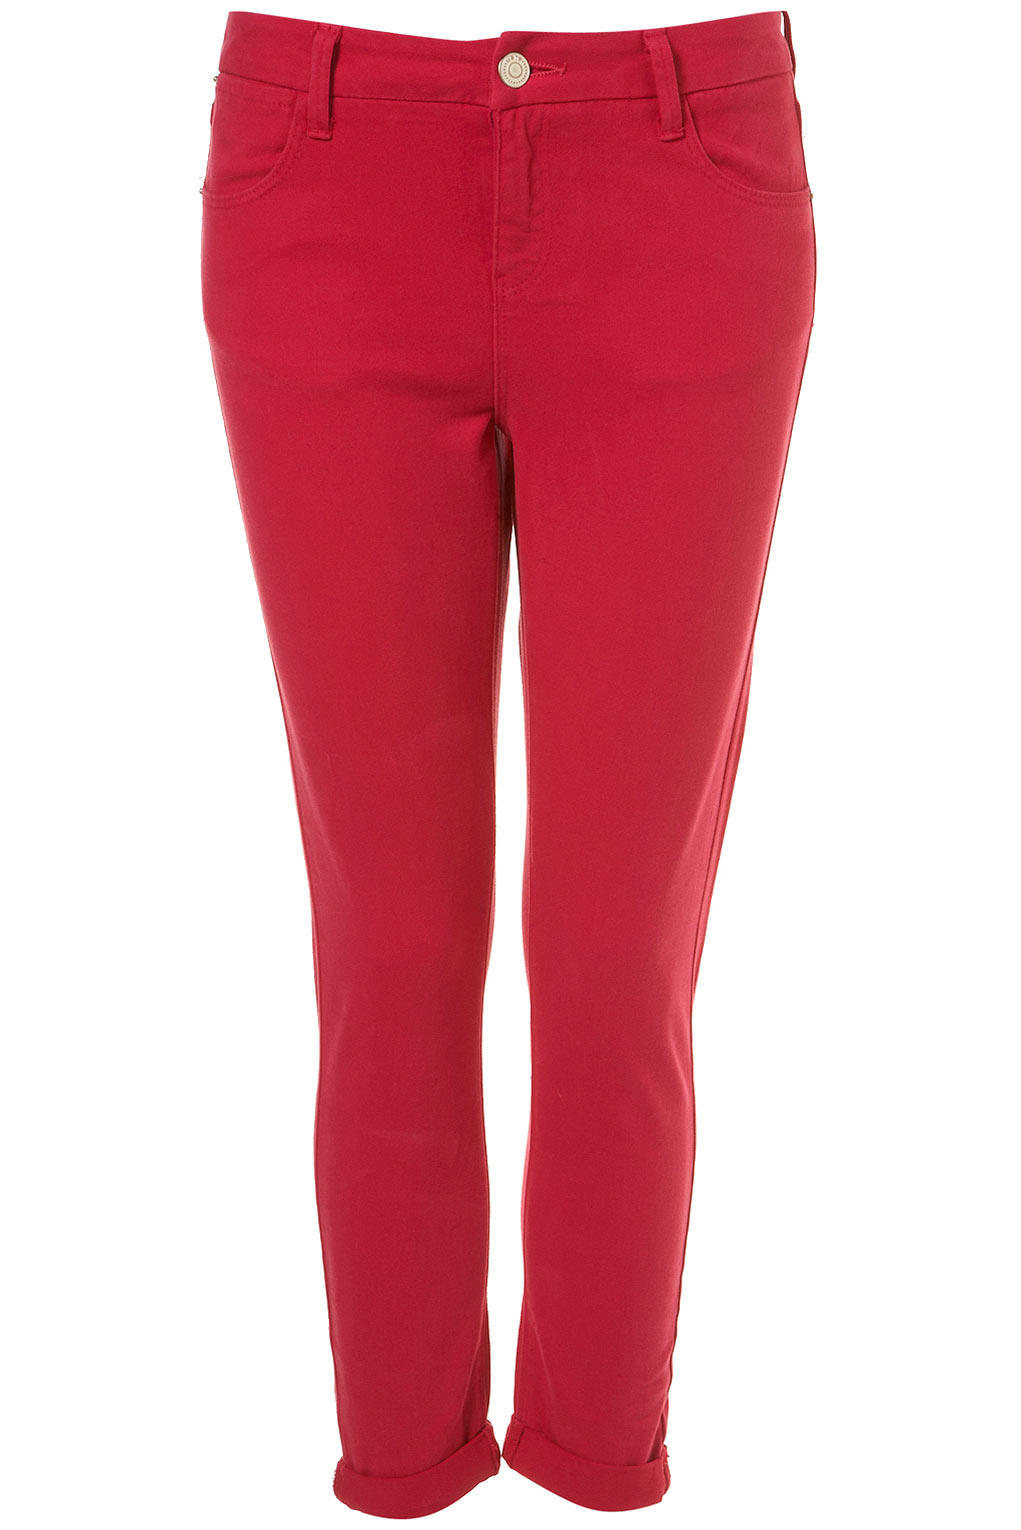 Find great deals on eBay for hot pink skinny jeans. Shop with confidence.